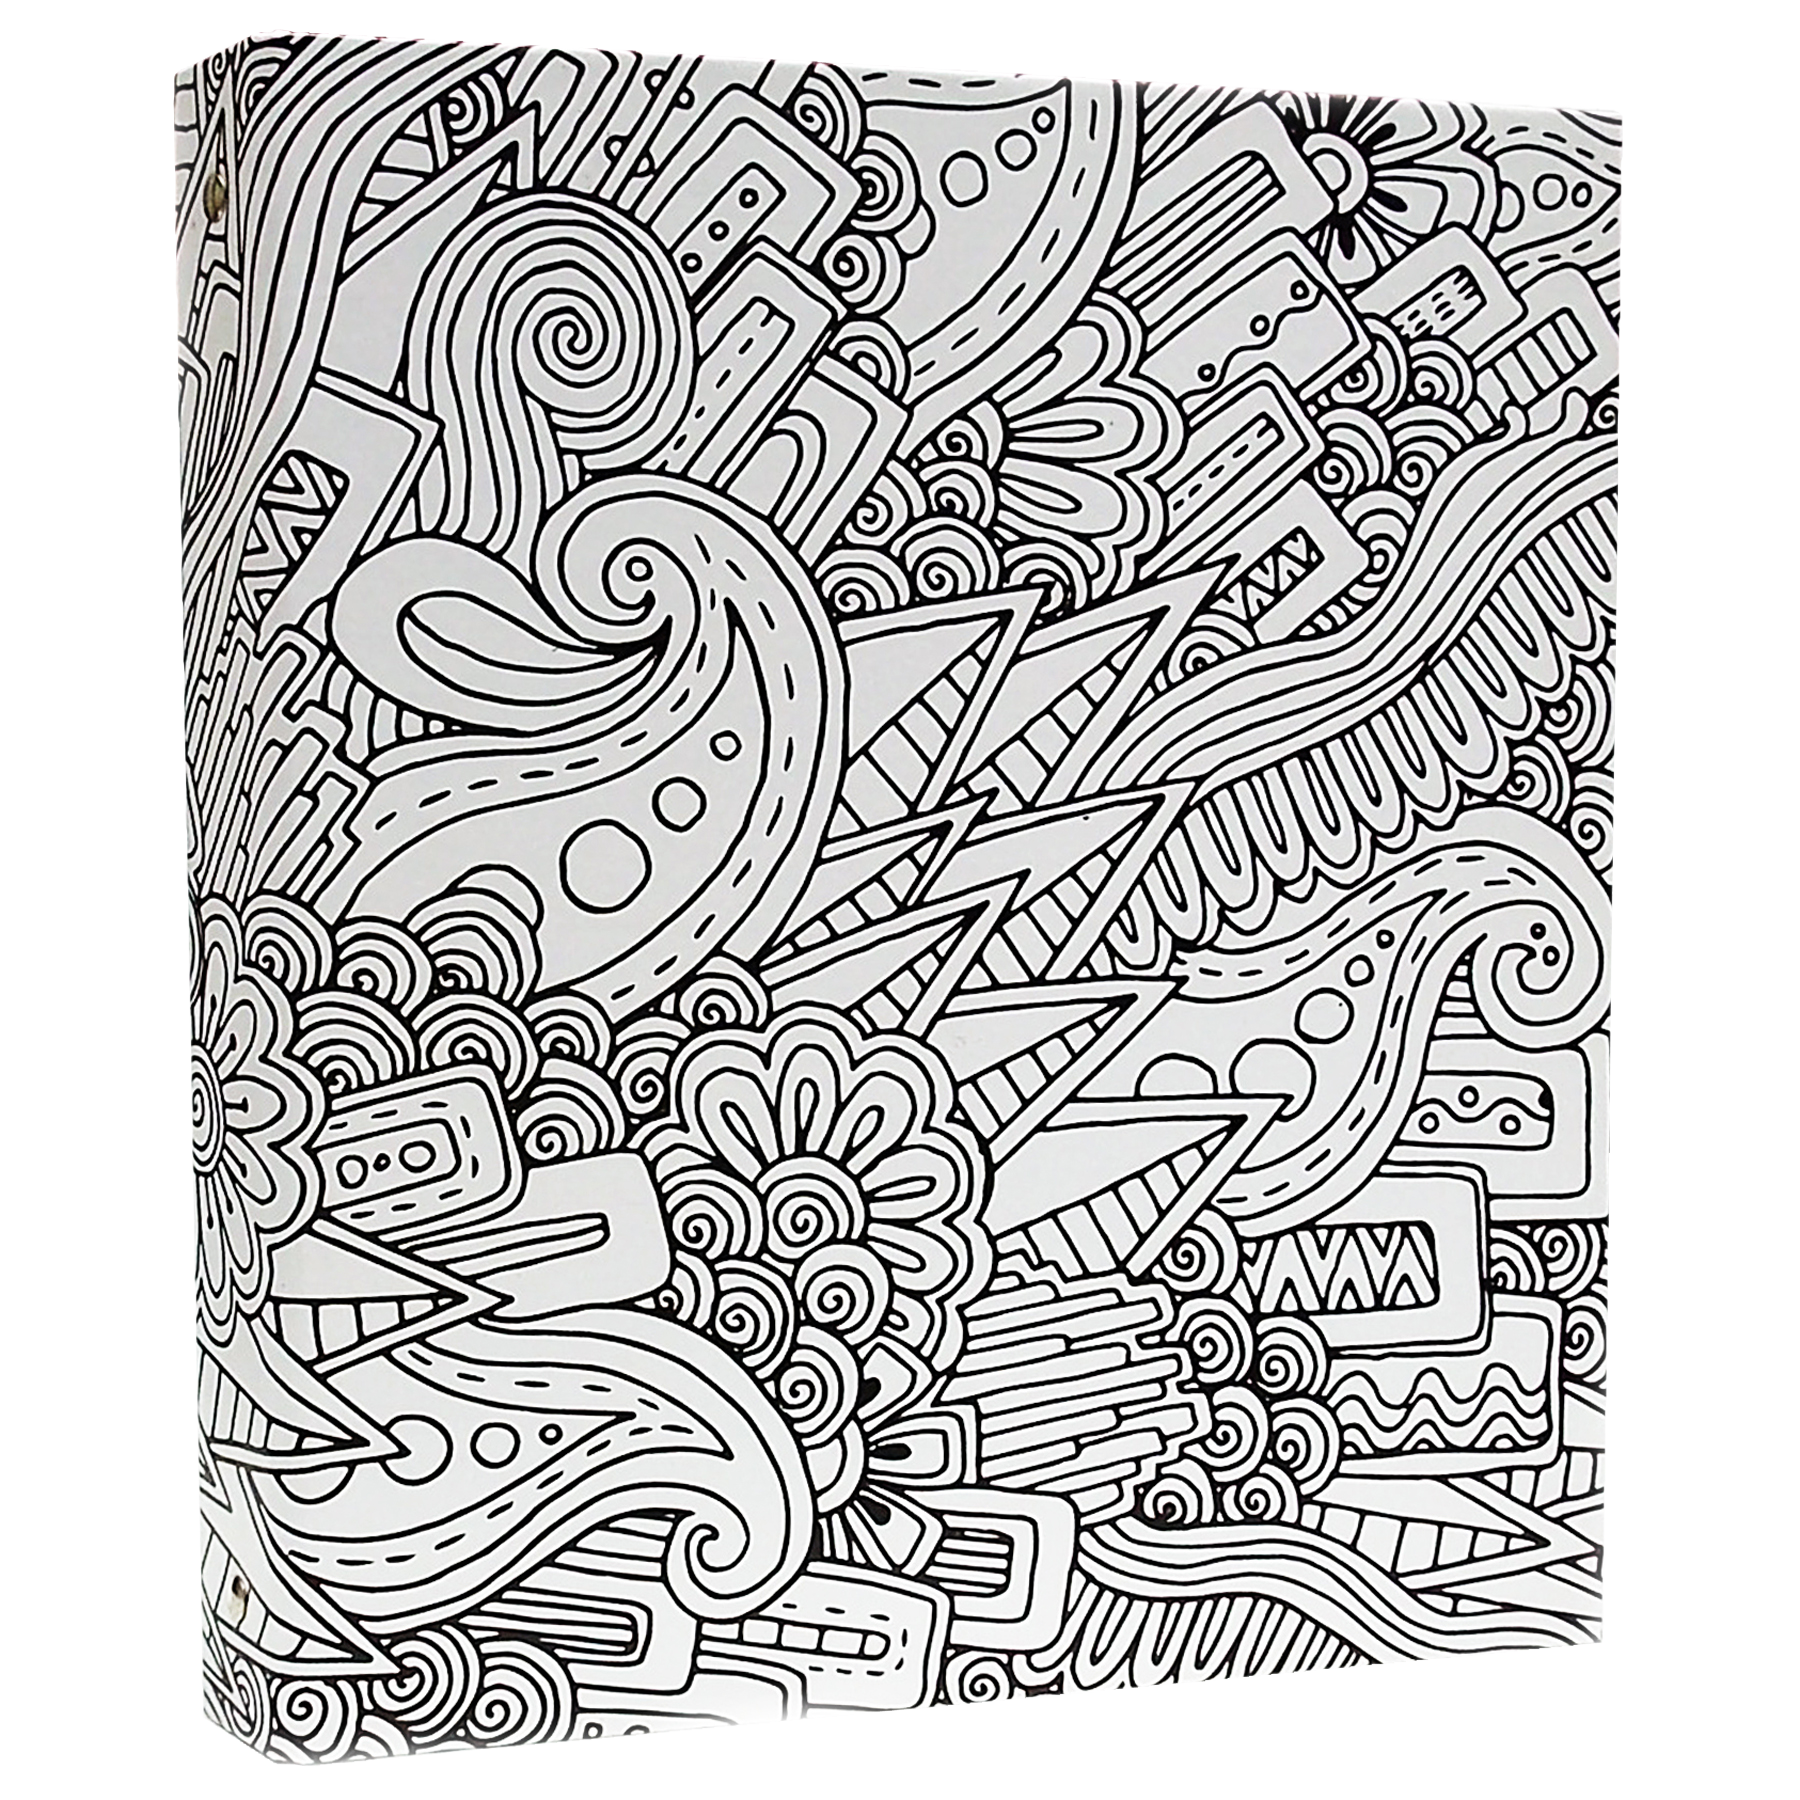 Arts drawing abstract. Illustrator coloring binder in